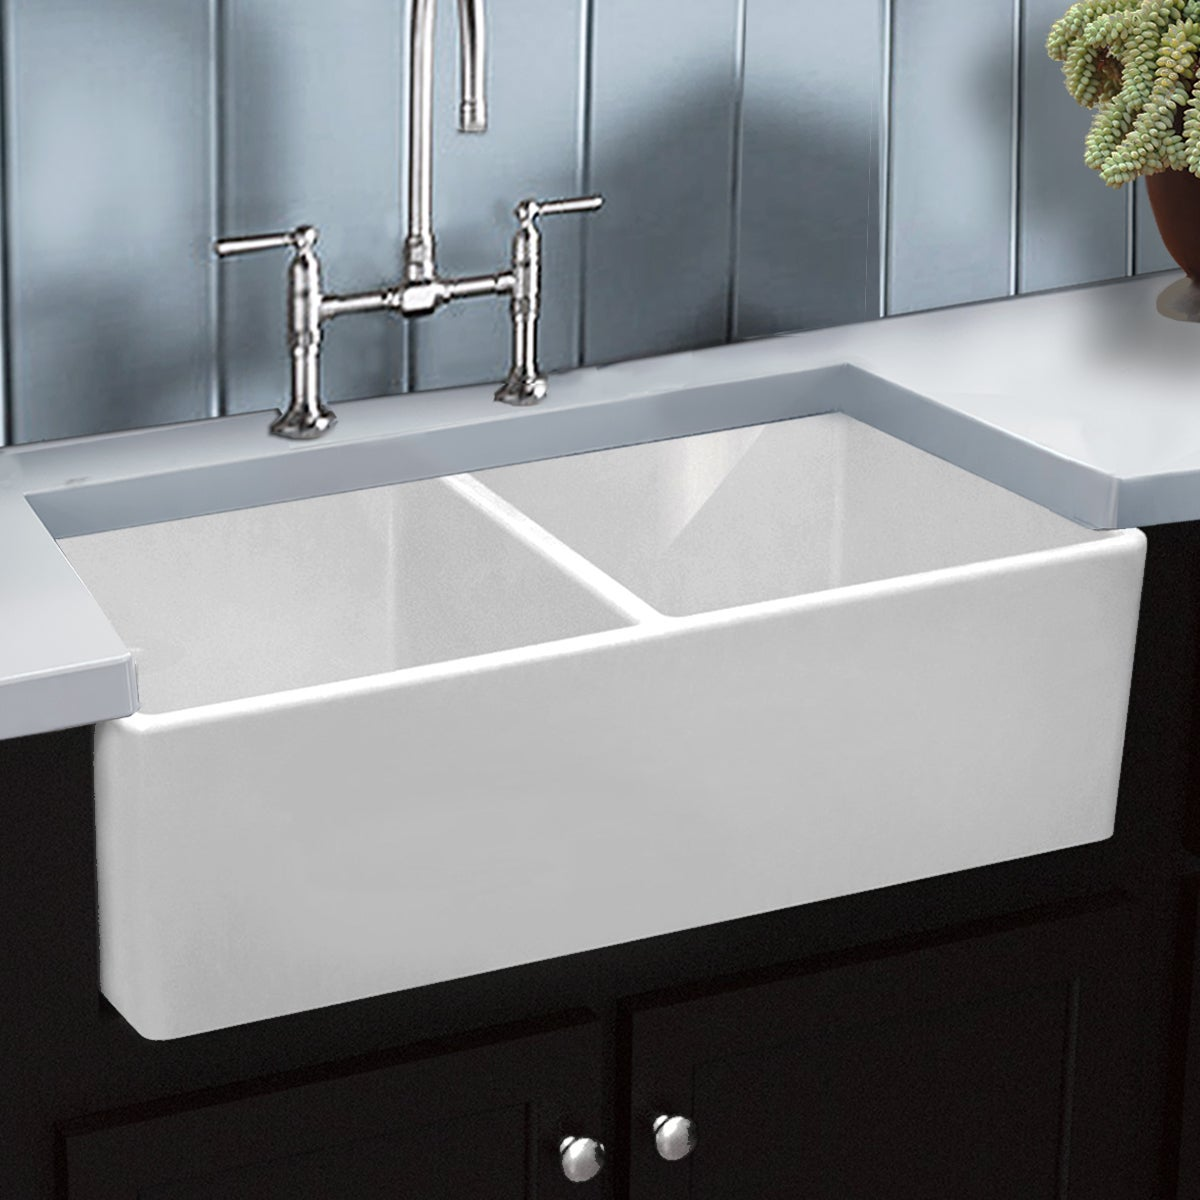 Highpoint Collection Italian Fireclay Double Bowl Farmhouse Sink Free Shipping Today 13448989